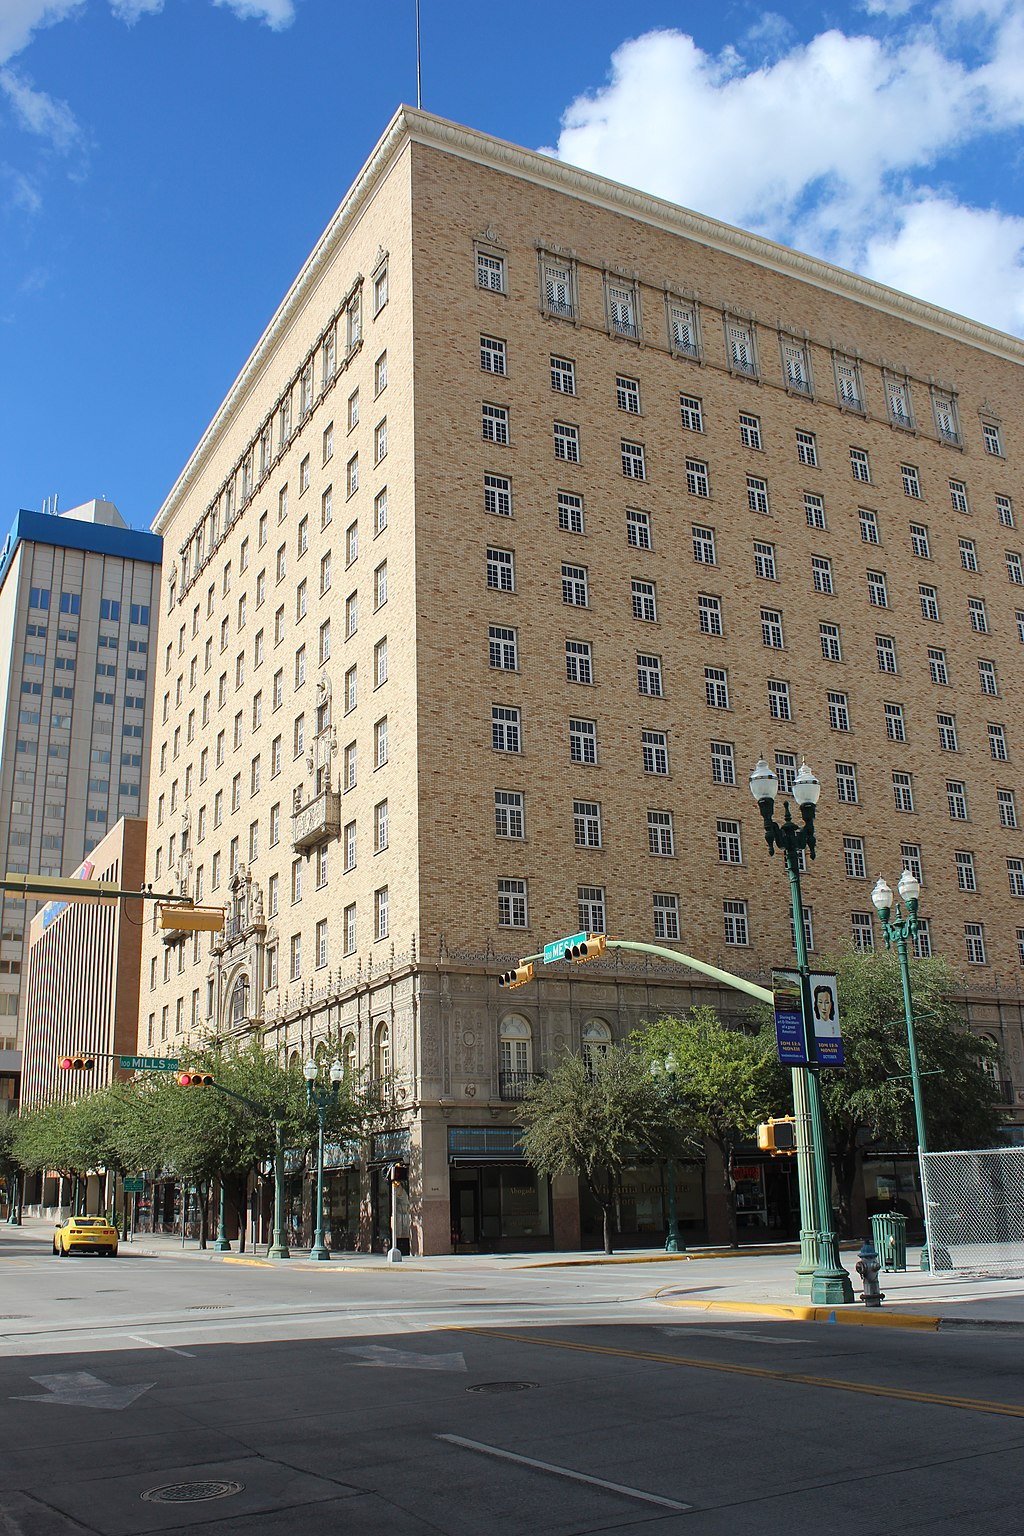 The Hotel Cortez was built 1926 and is a fine example of Spanish Colonial Revival architecture.